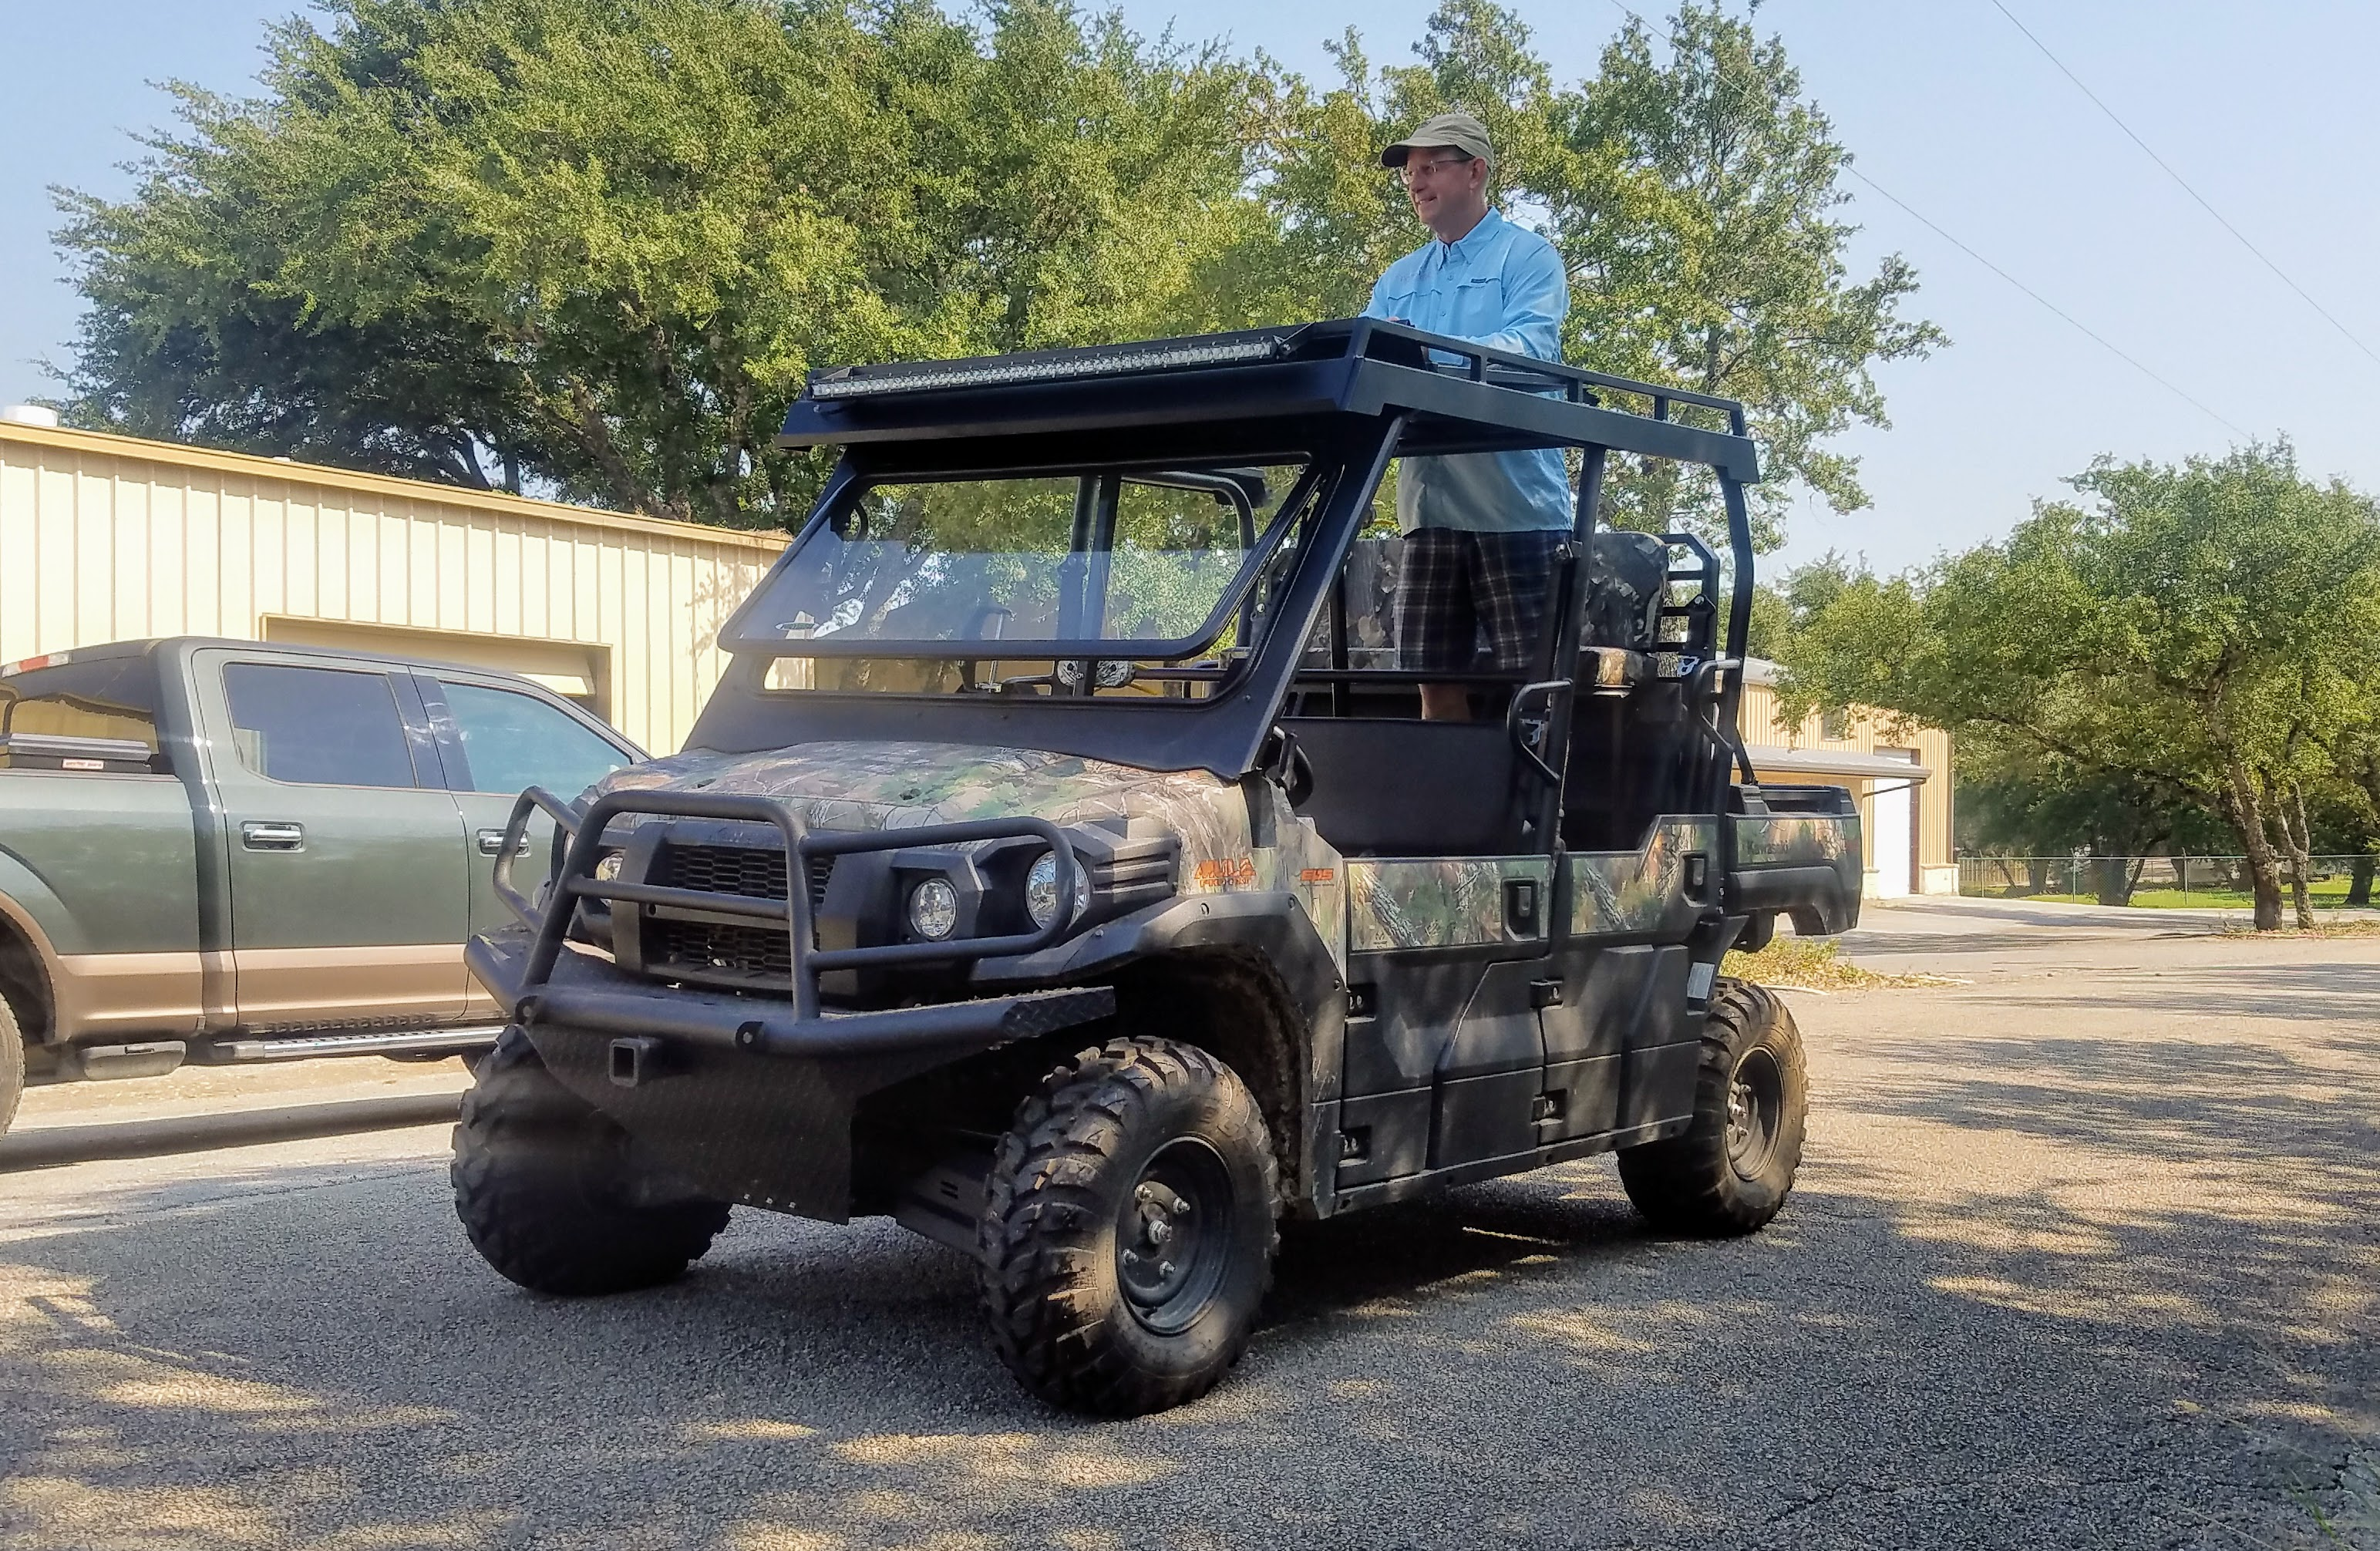 kawasaki-mule-pro-fxt-with-metal-top-and-front-tip-out-windshield-brian-brady.jpg